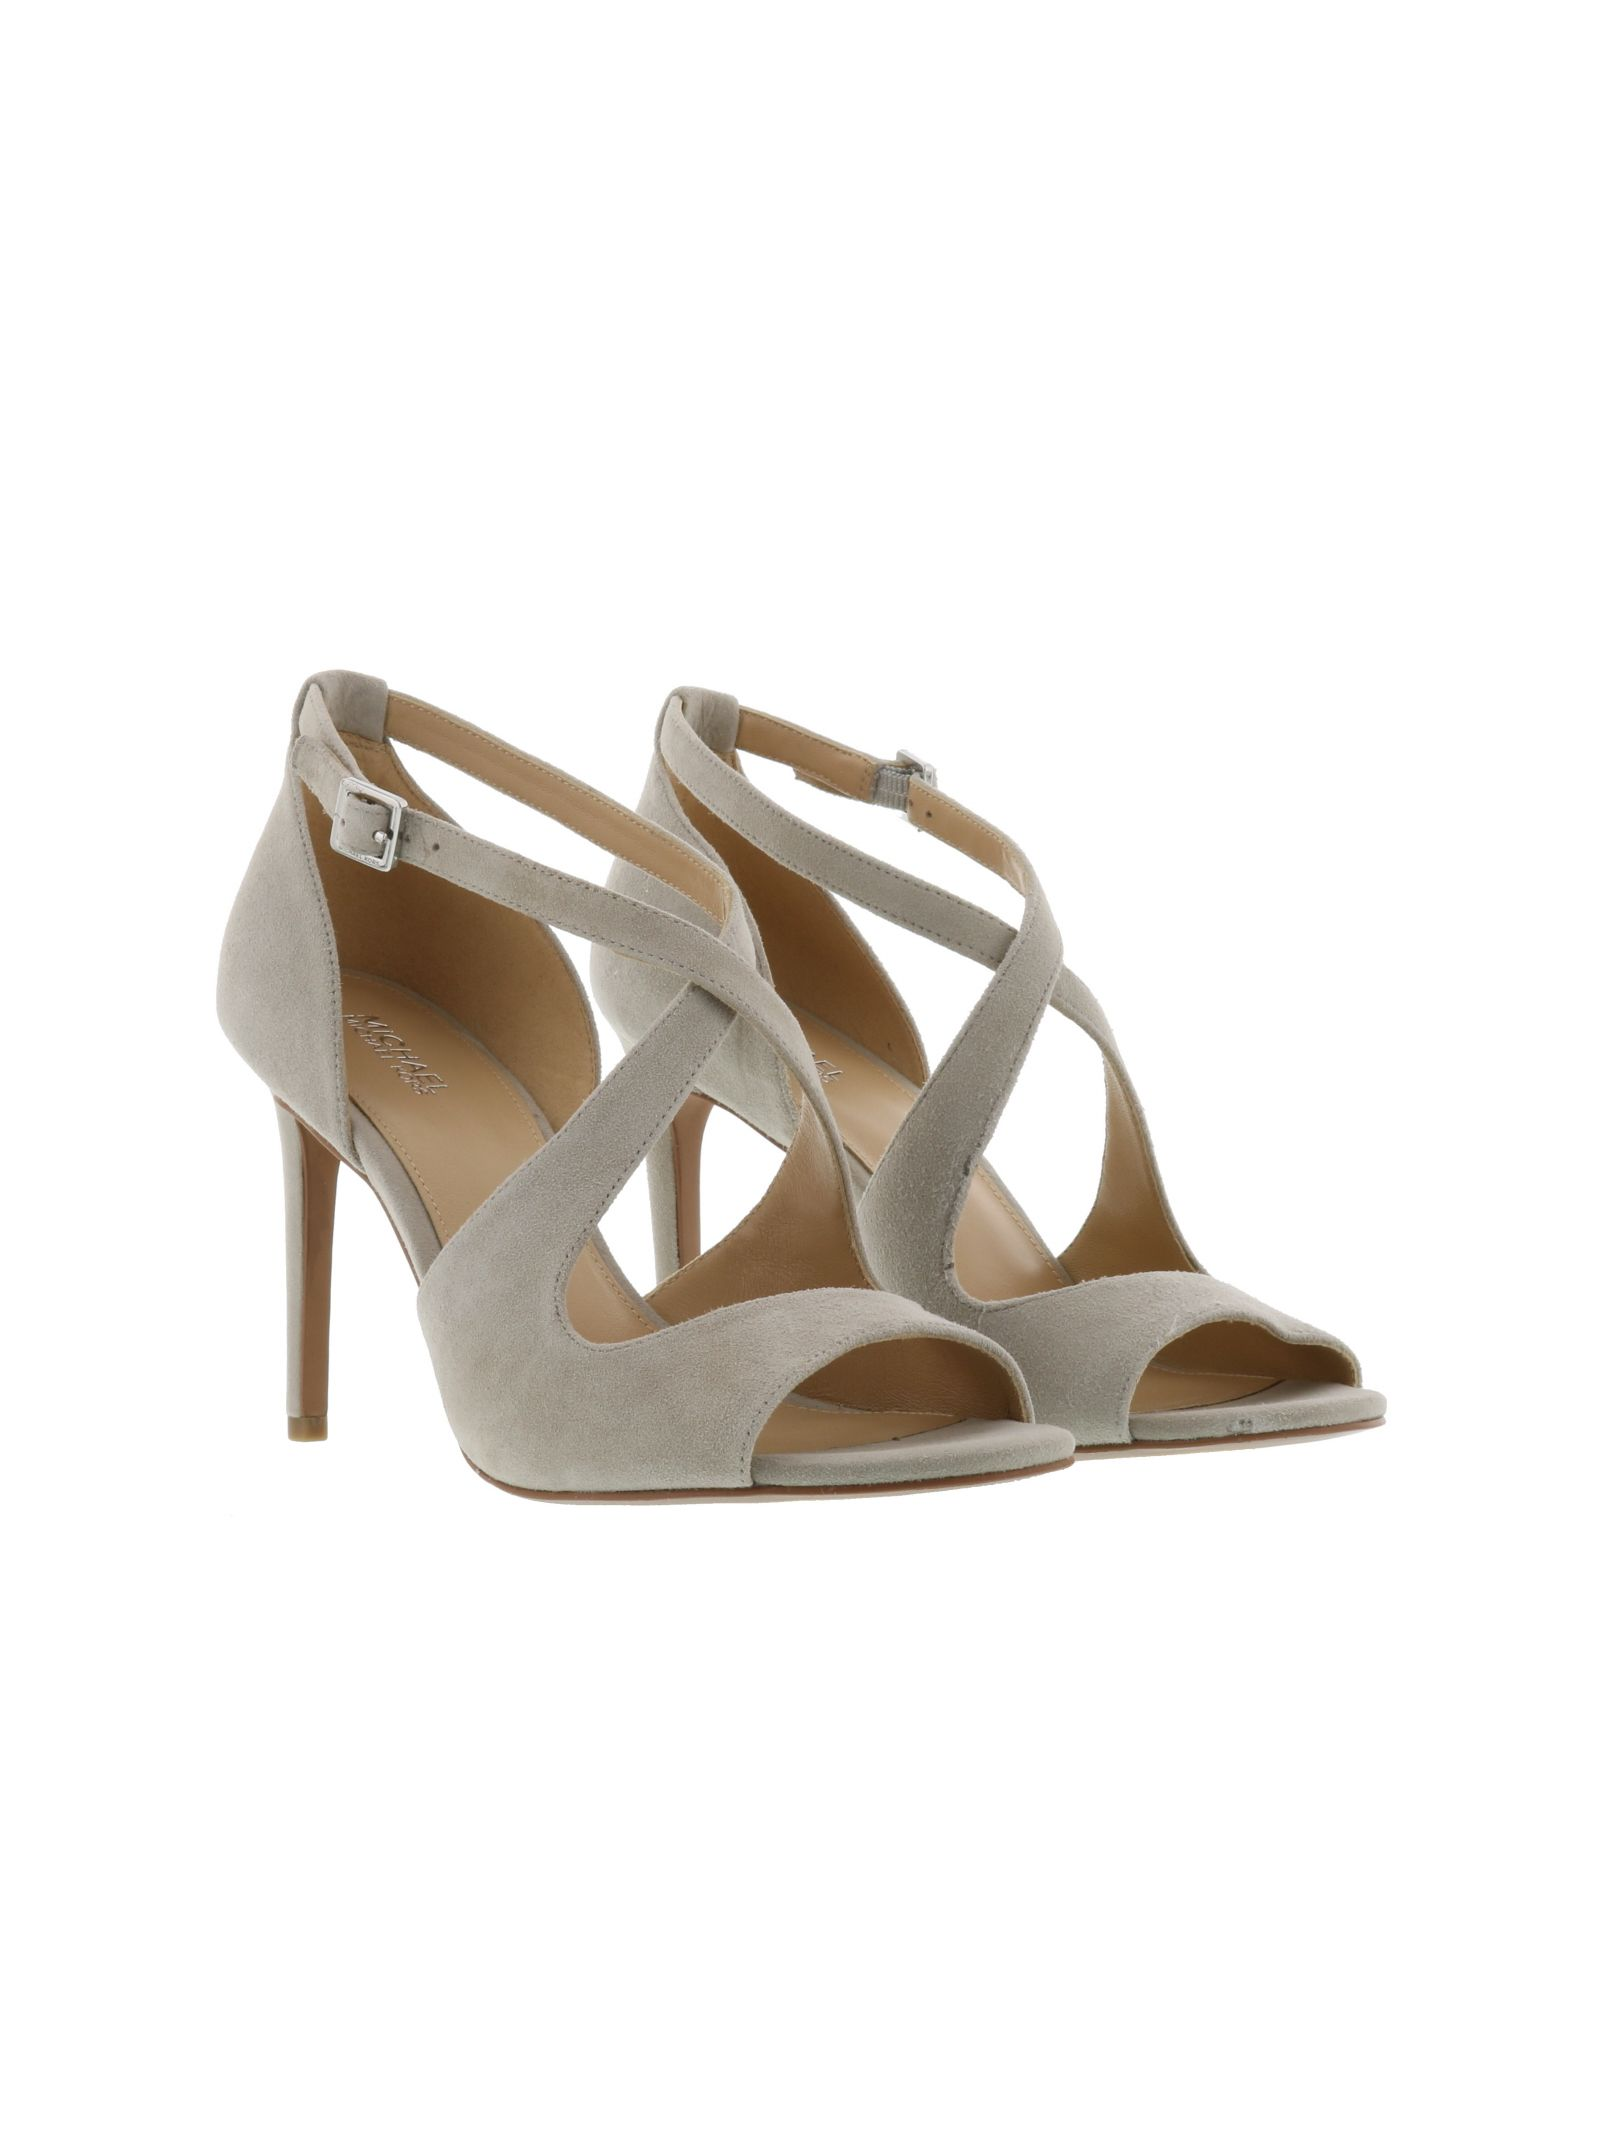 michael kors female michael kors estee sandals